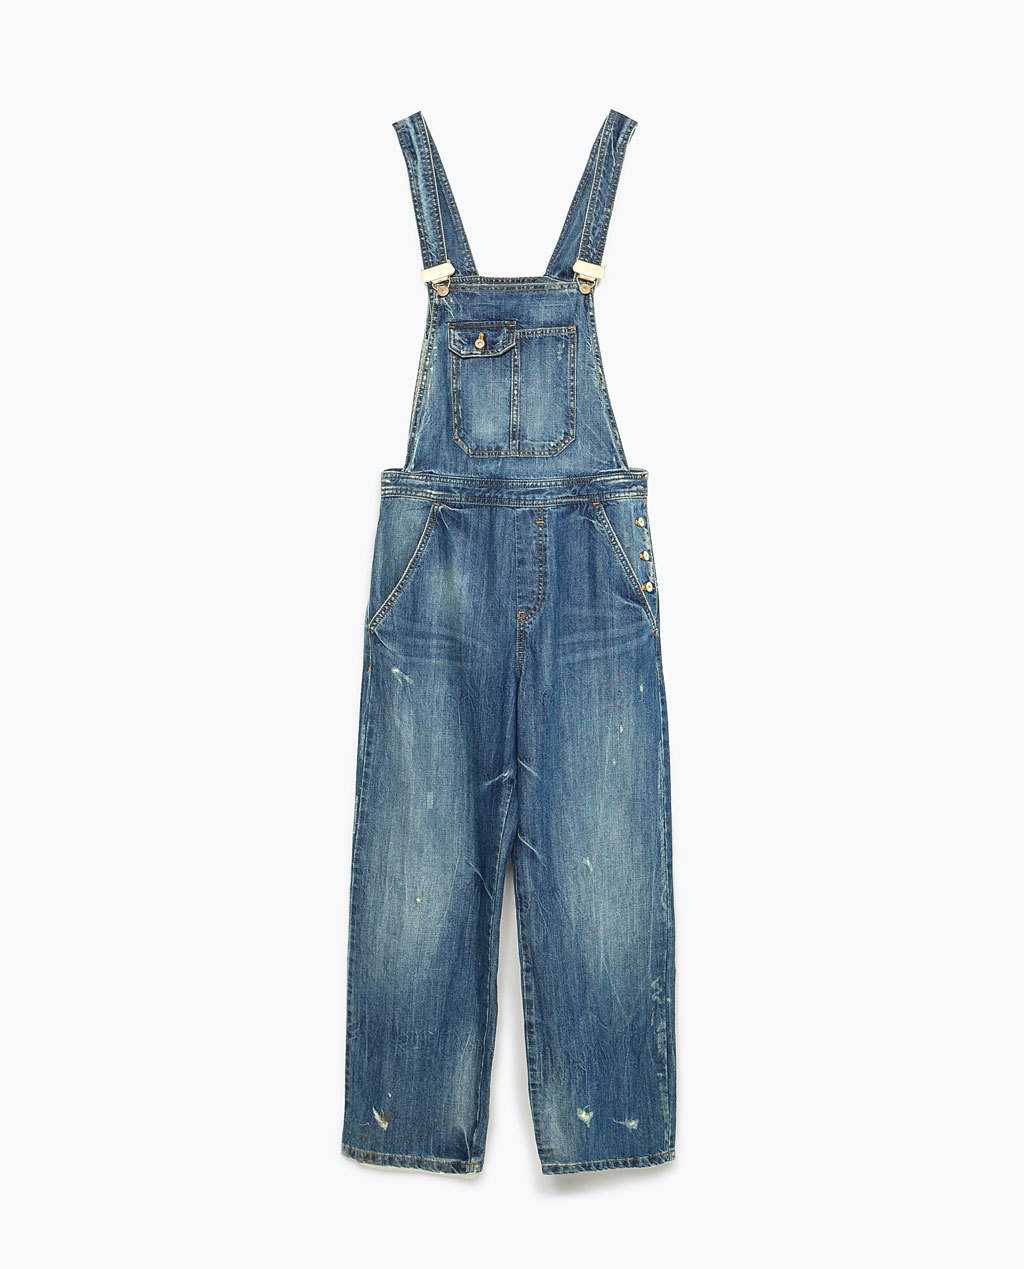 Wide Leg Dungarees - length: standard; sleeve style: standard vest straps/shoulder straps; fit: loose; pattern: plain; predominant colour: denim; occasions: casual, creative work; fibres: cotton - 100%; sleeve length: sleeveless; texture group: denim; style: dungarees; neckline: low square neck; season: s/s 2015; wardrobe: highlight